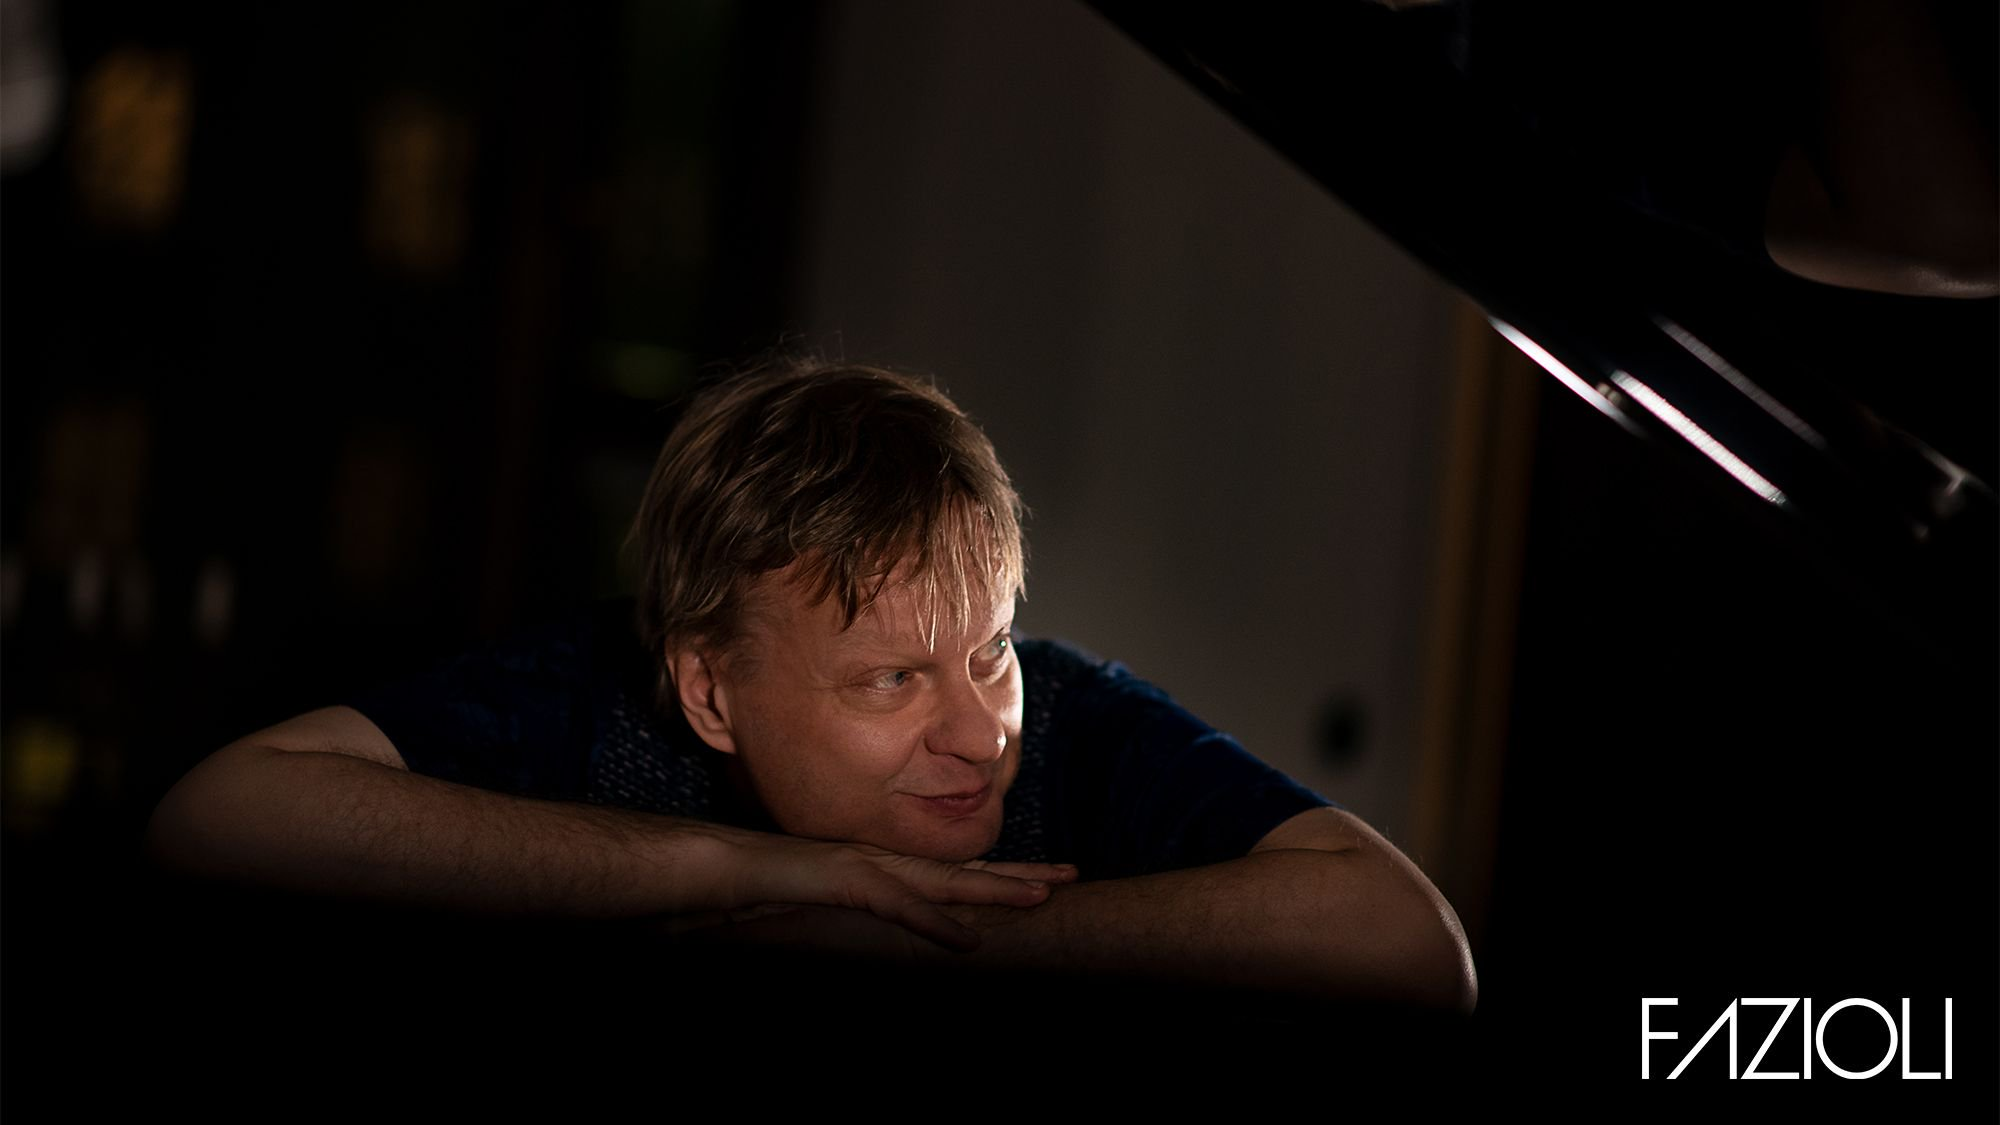 Reloaded twaddle – RT @Fazioli_Pianos: #HappyBirthday to our dear friend @IiroRantala, one of the b...